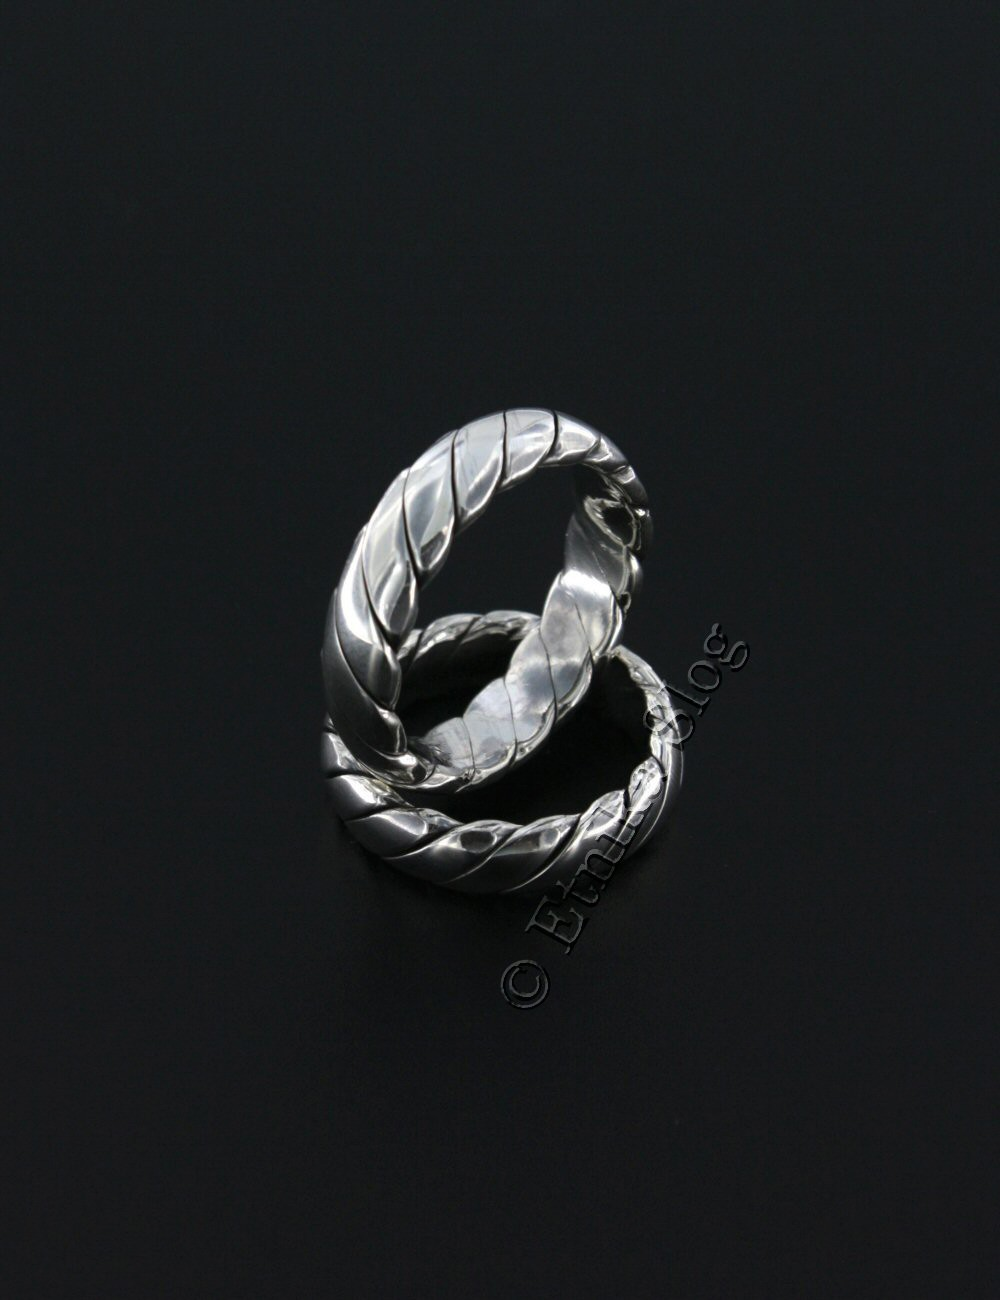 WROUGHT SILVER RINGS ARG-AN1550-01 - Oriente Import S.r.l.